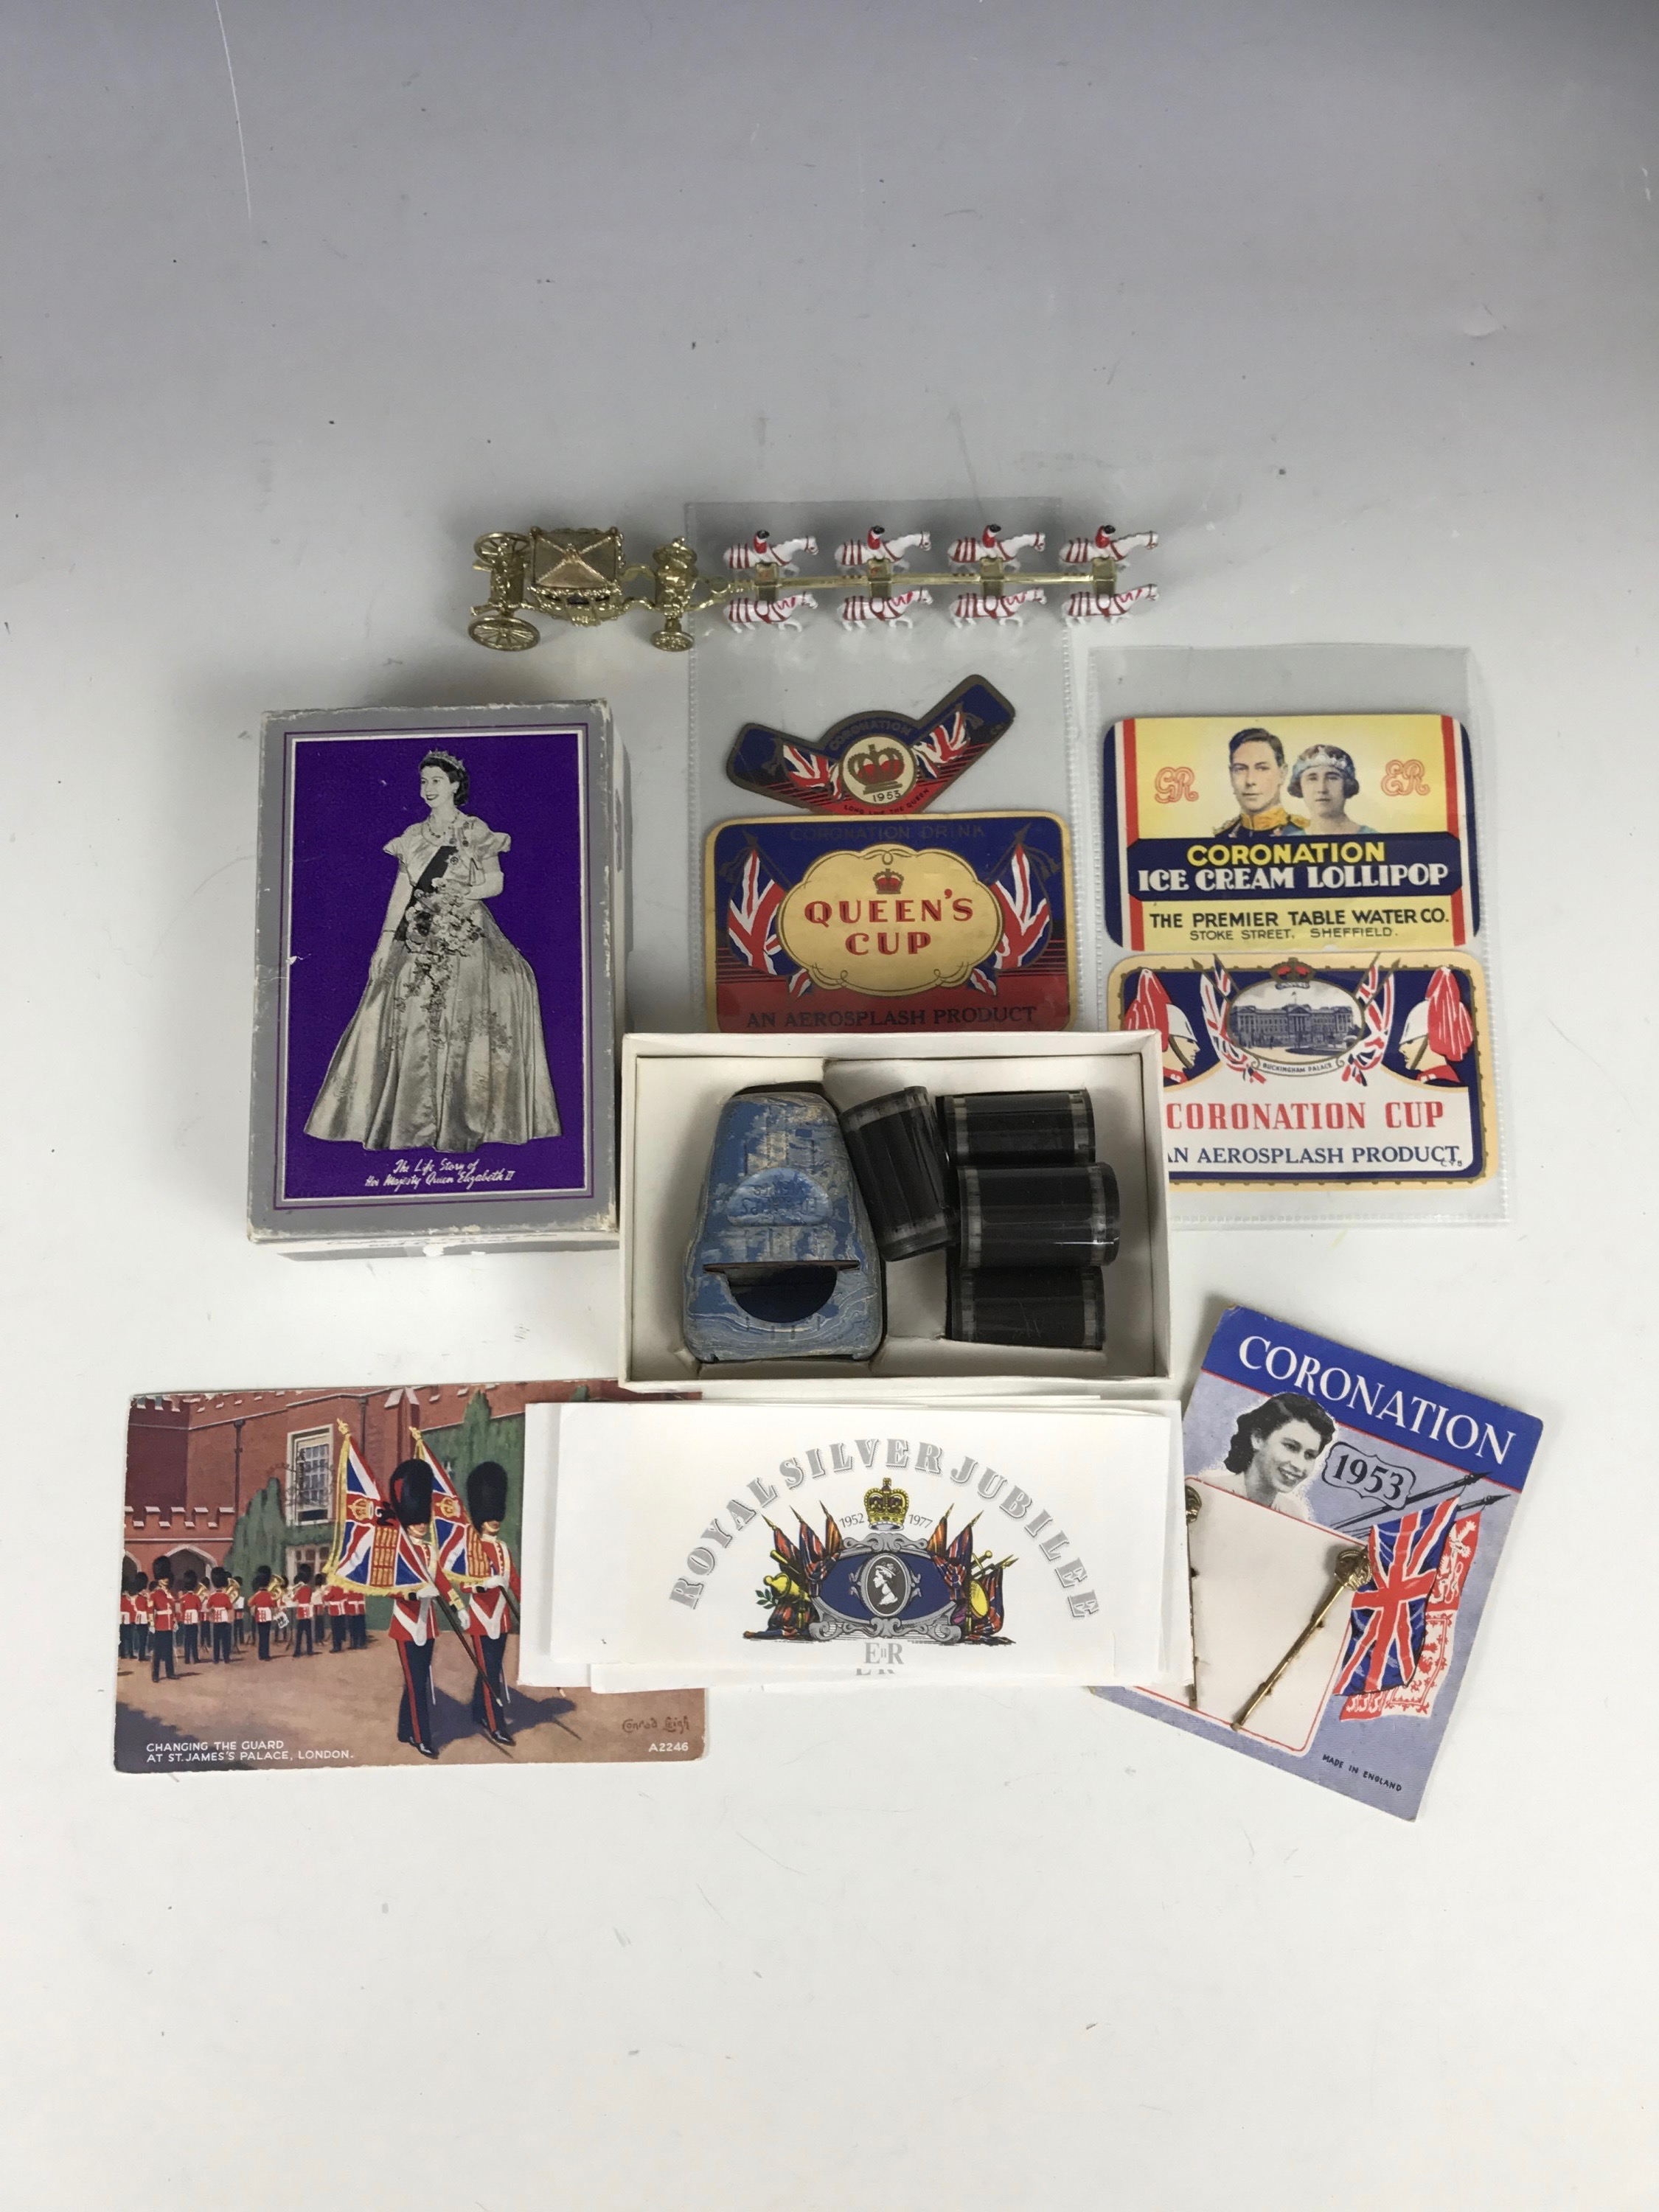 Lot 22 - 1953 Royal Coronation souvenirs and ephemera including a 'Film Stips' viewer and reels